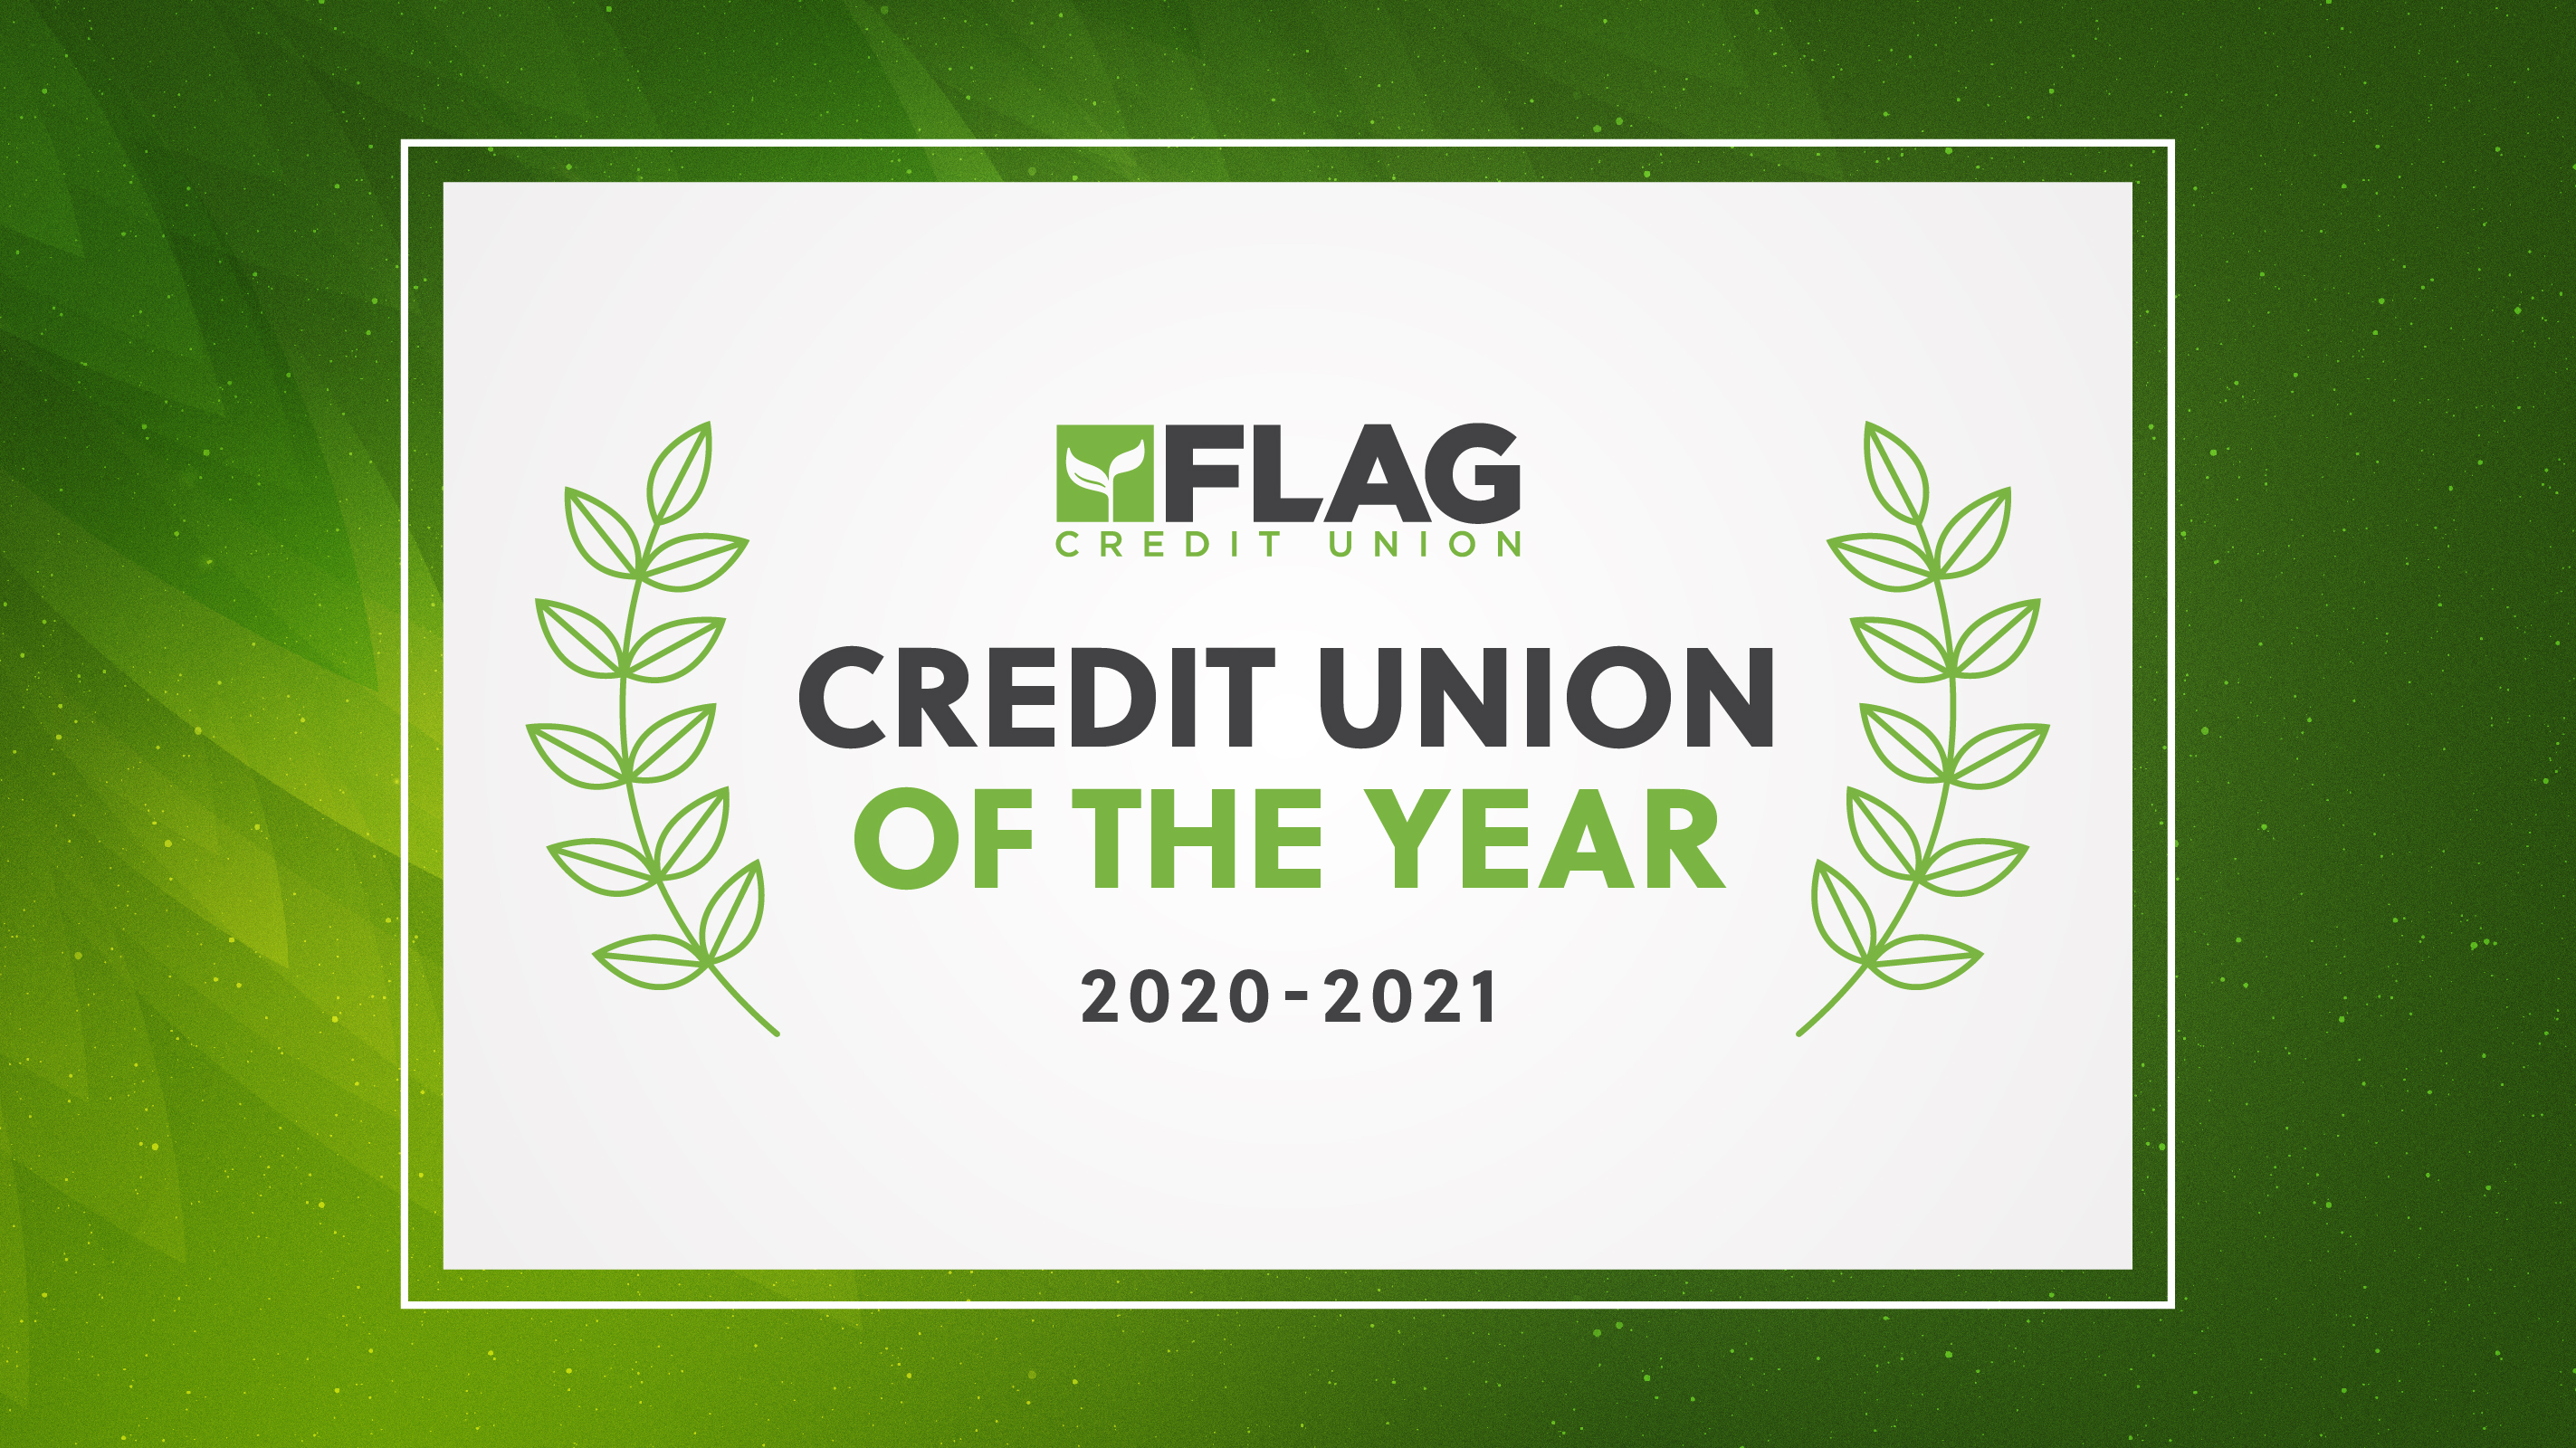 FLAG named Credit Union of the Year; 2020-2021